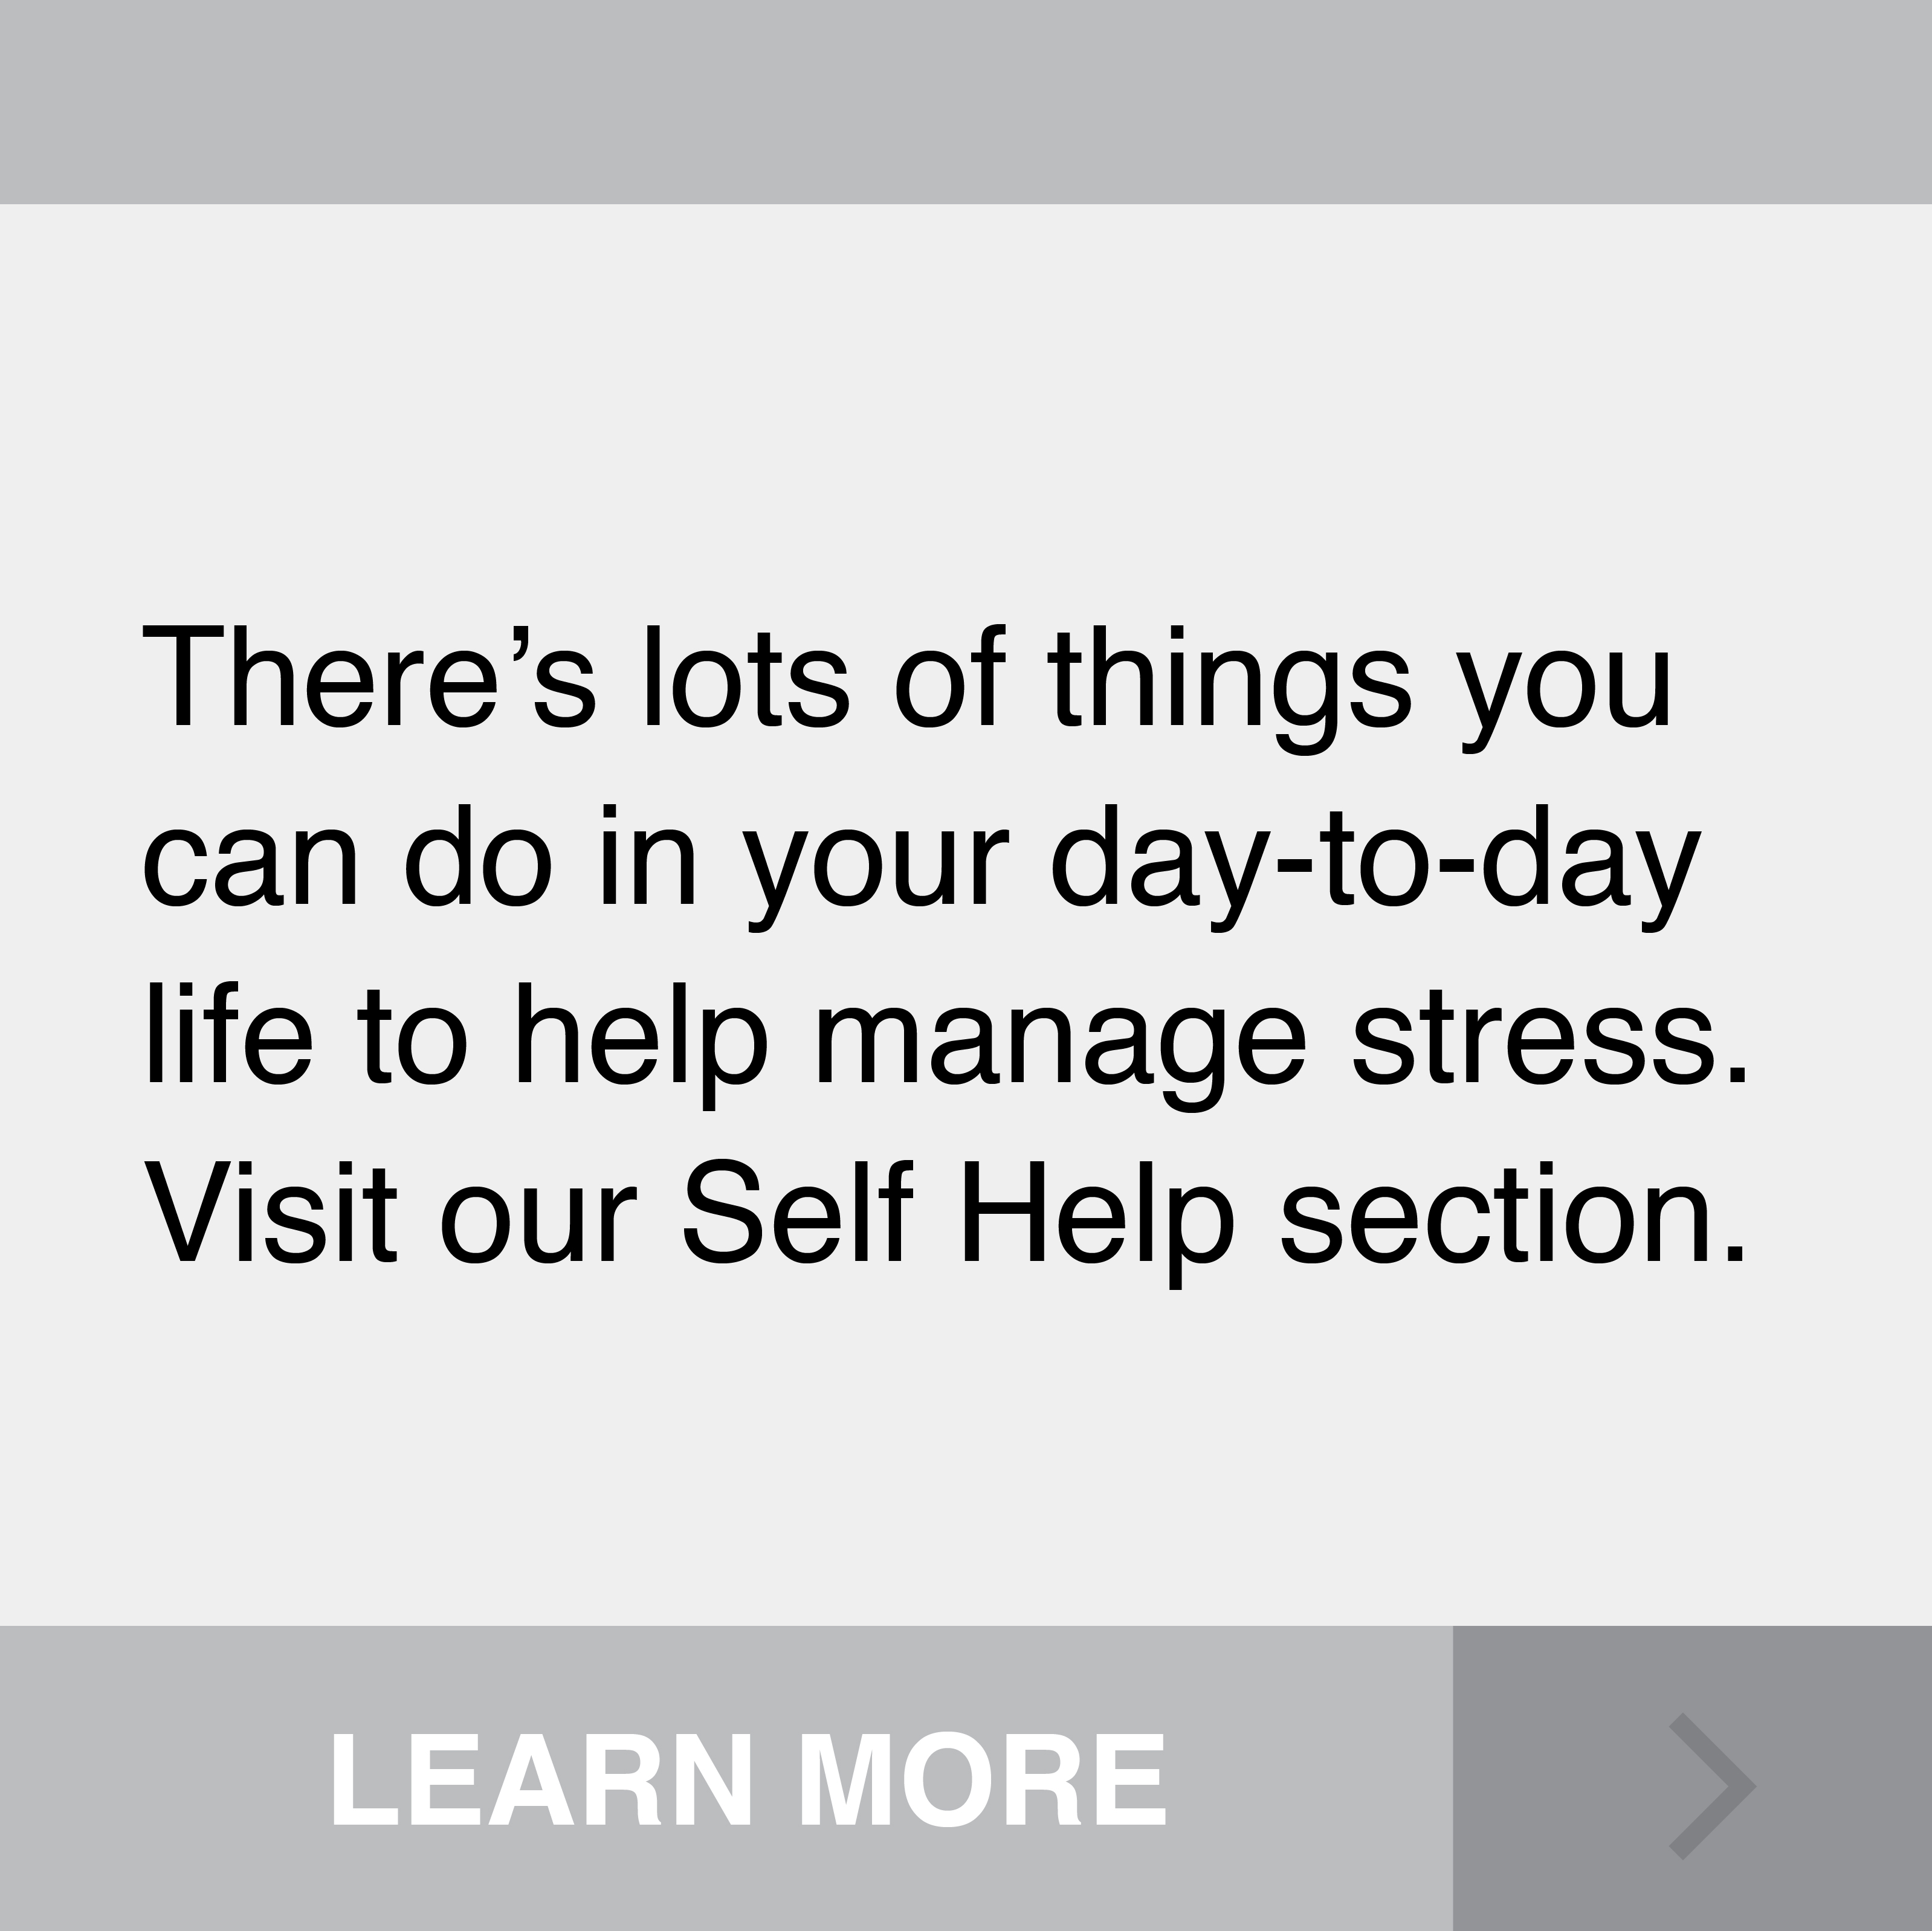 There's lots of things you can do in your day-to-day life to help manage stress. Visit our Self Help section. Click to Learn More.